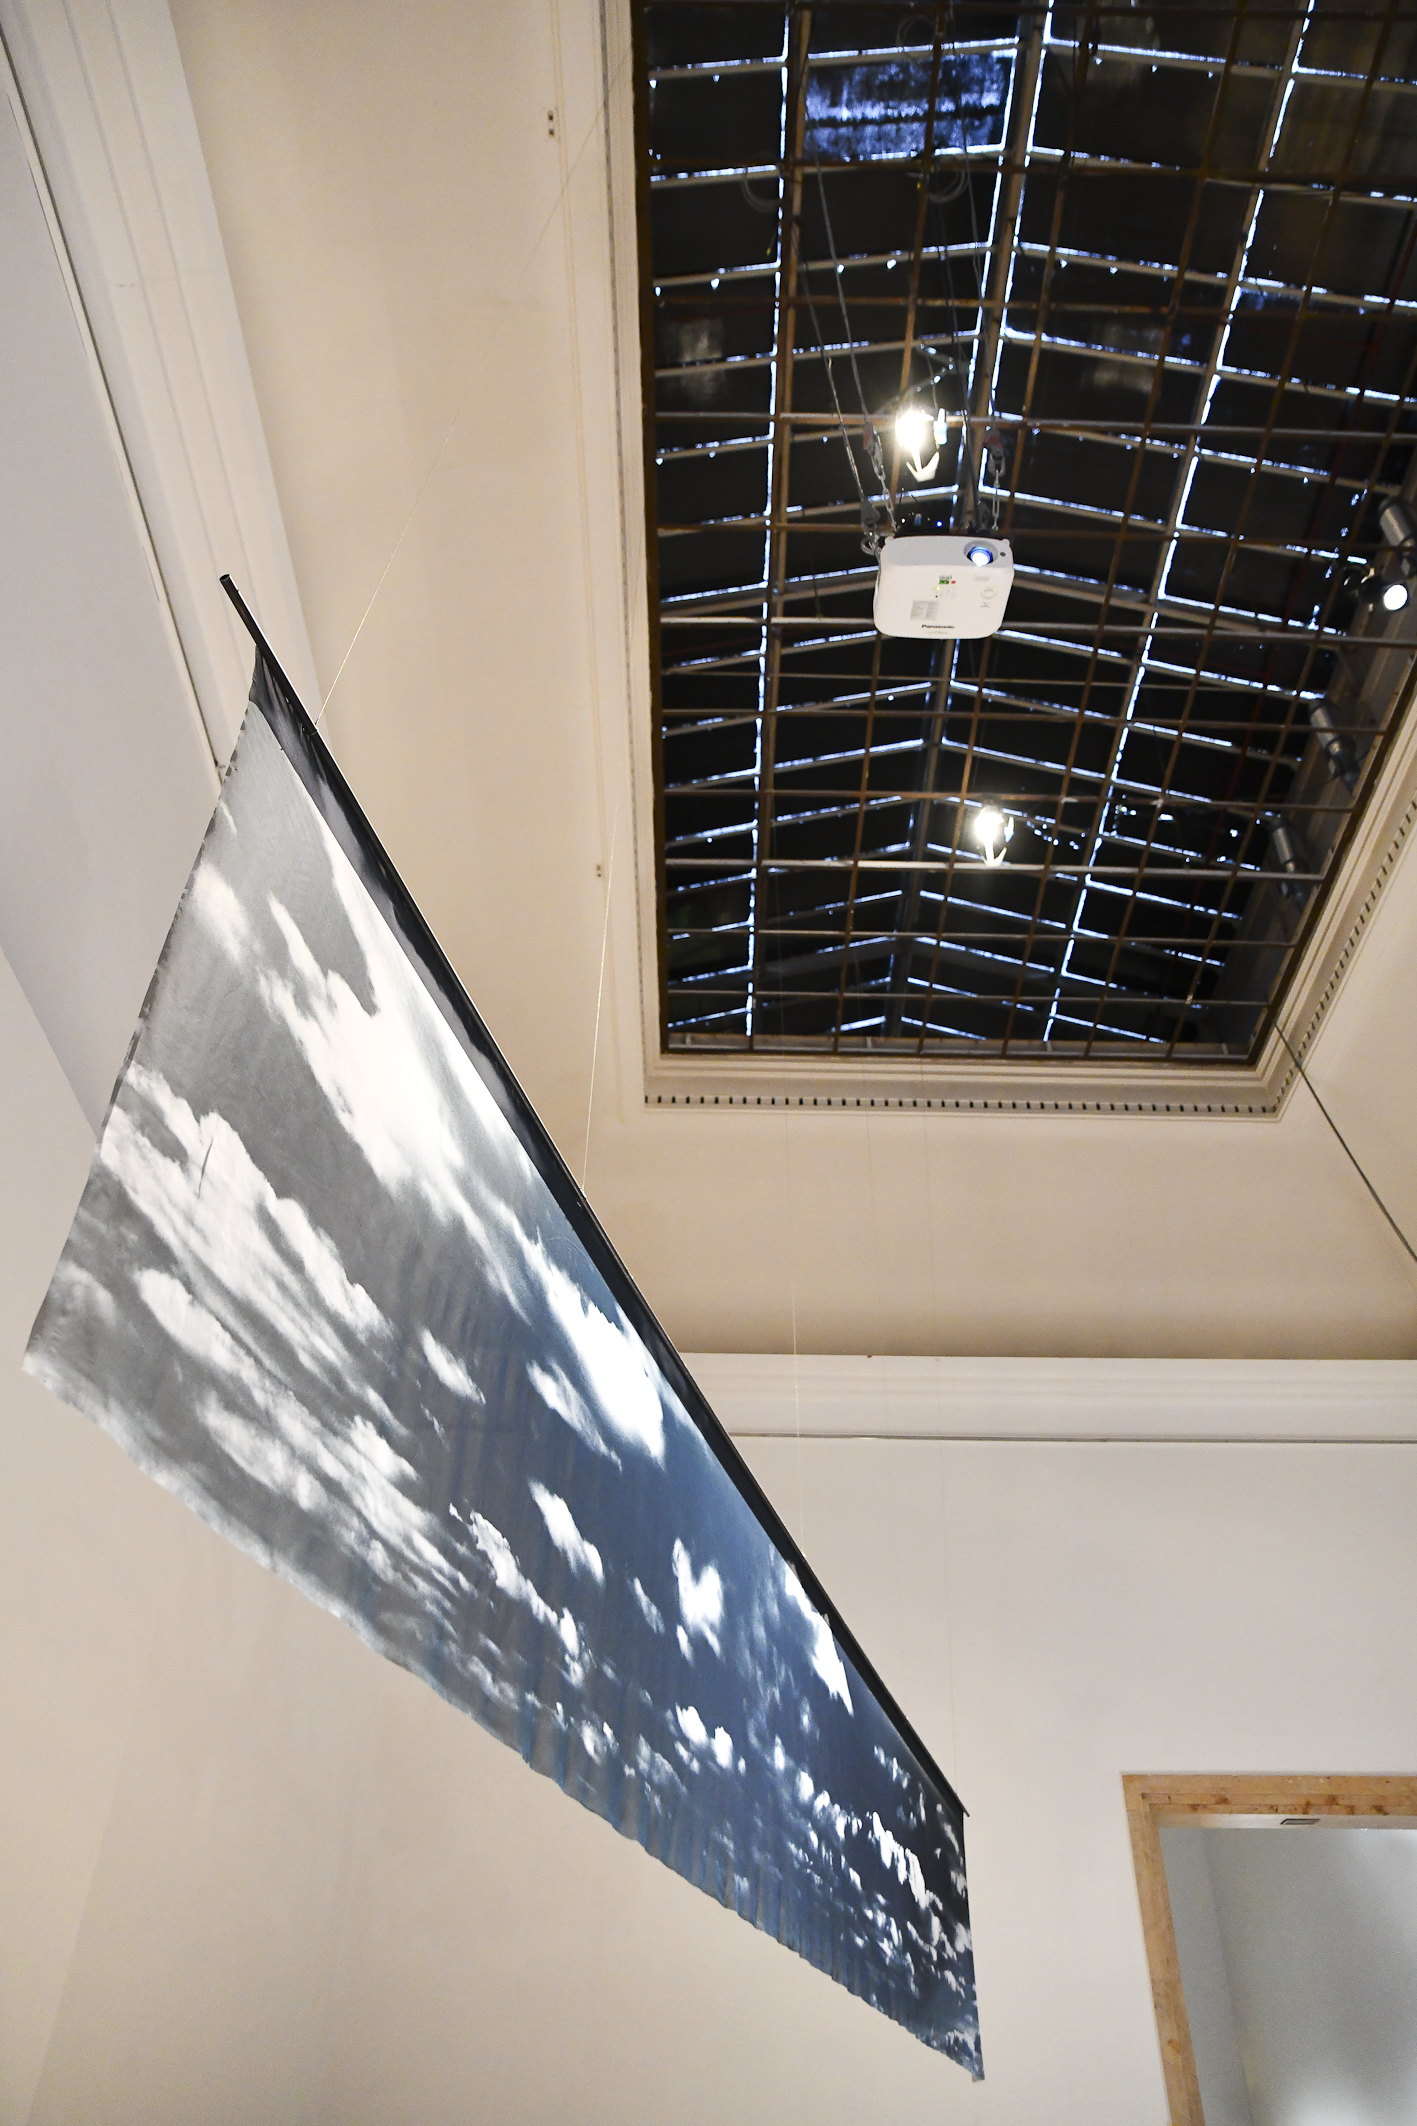 """DEAD OF NIGHT (MOONLIT CLOUDS, UNCHARTED LANDS AND OTHER SLEEPING BEAUTIES)"" MUNICH BIENNALE 2019 PRINTED FABRIC, STAINLESS STEEL 58 x 365 inches"